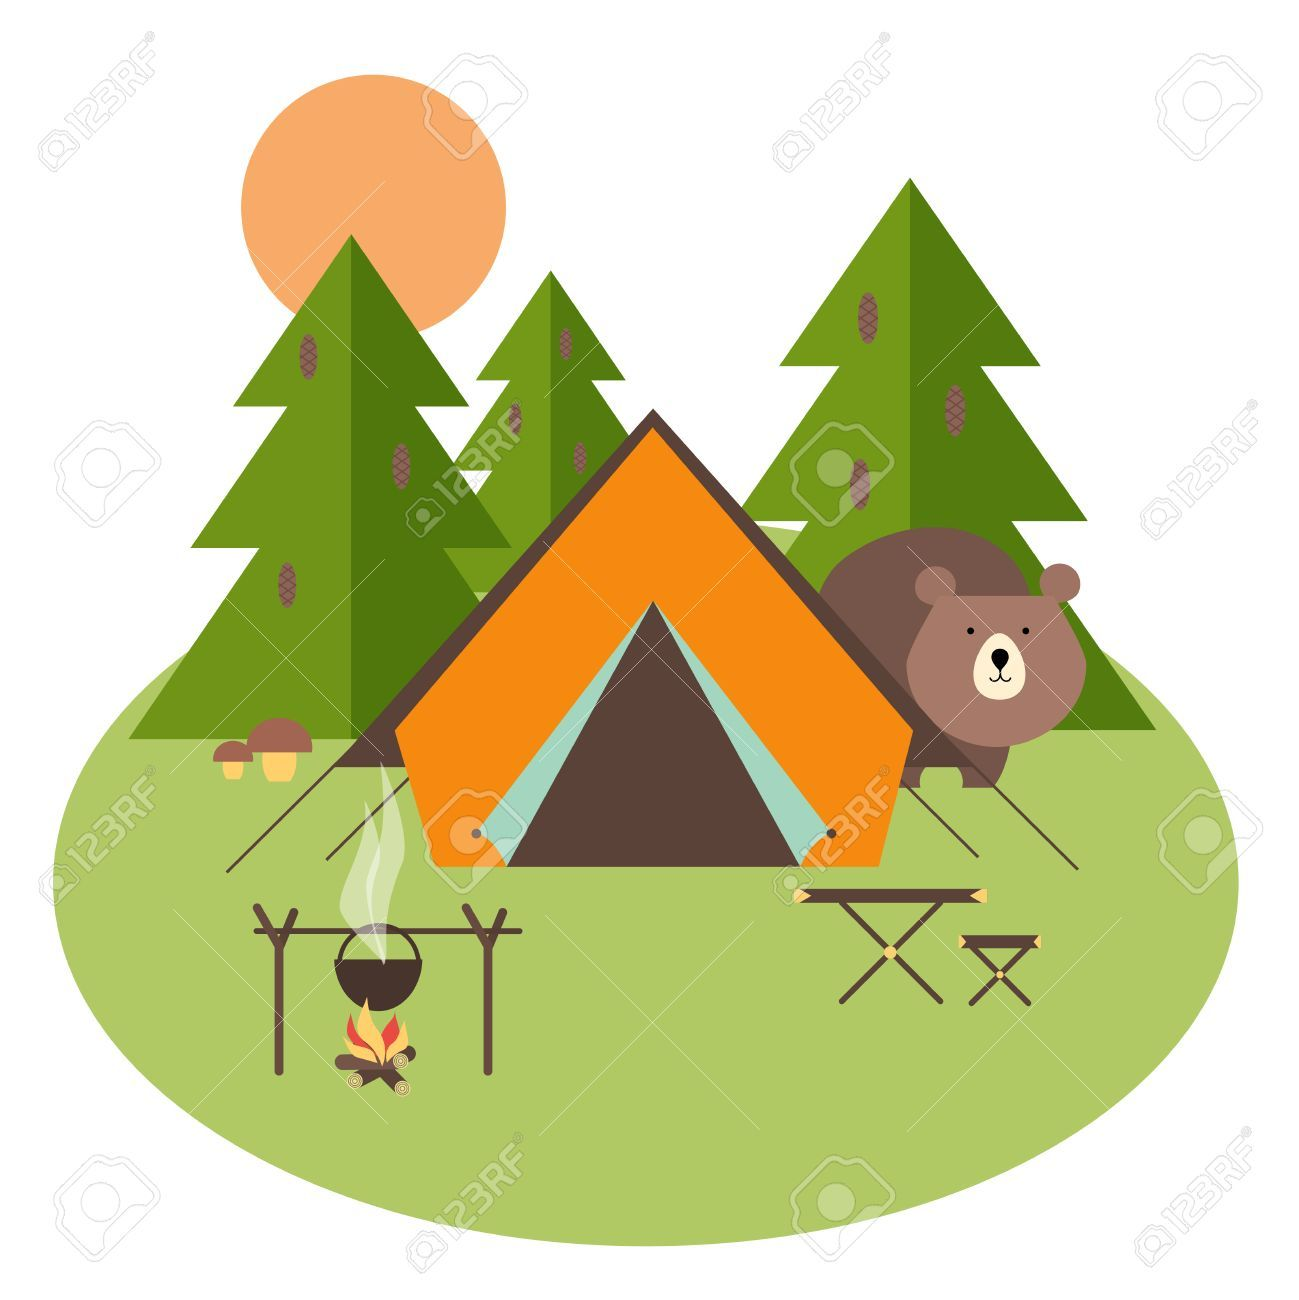 Free Camping Clipart 7.